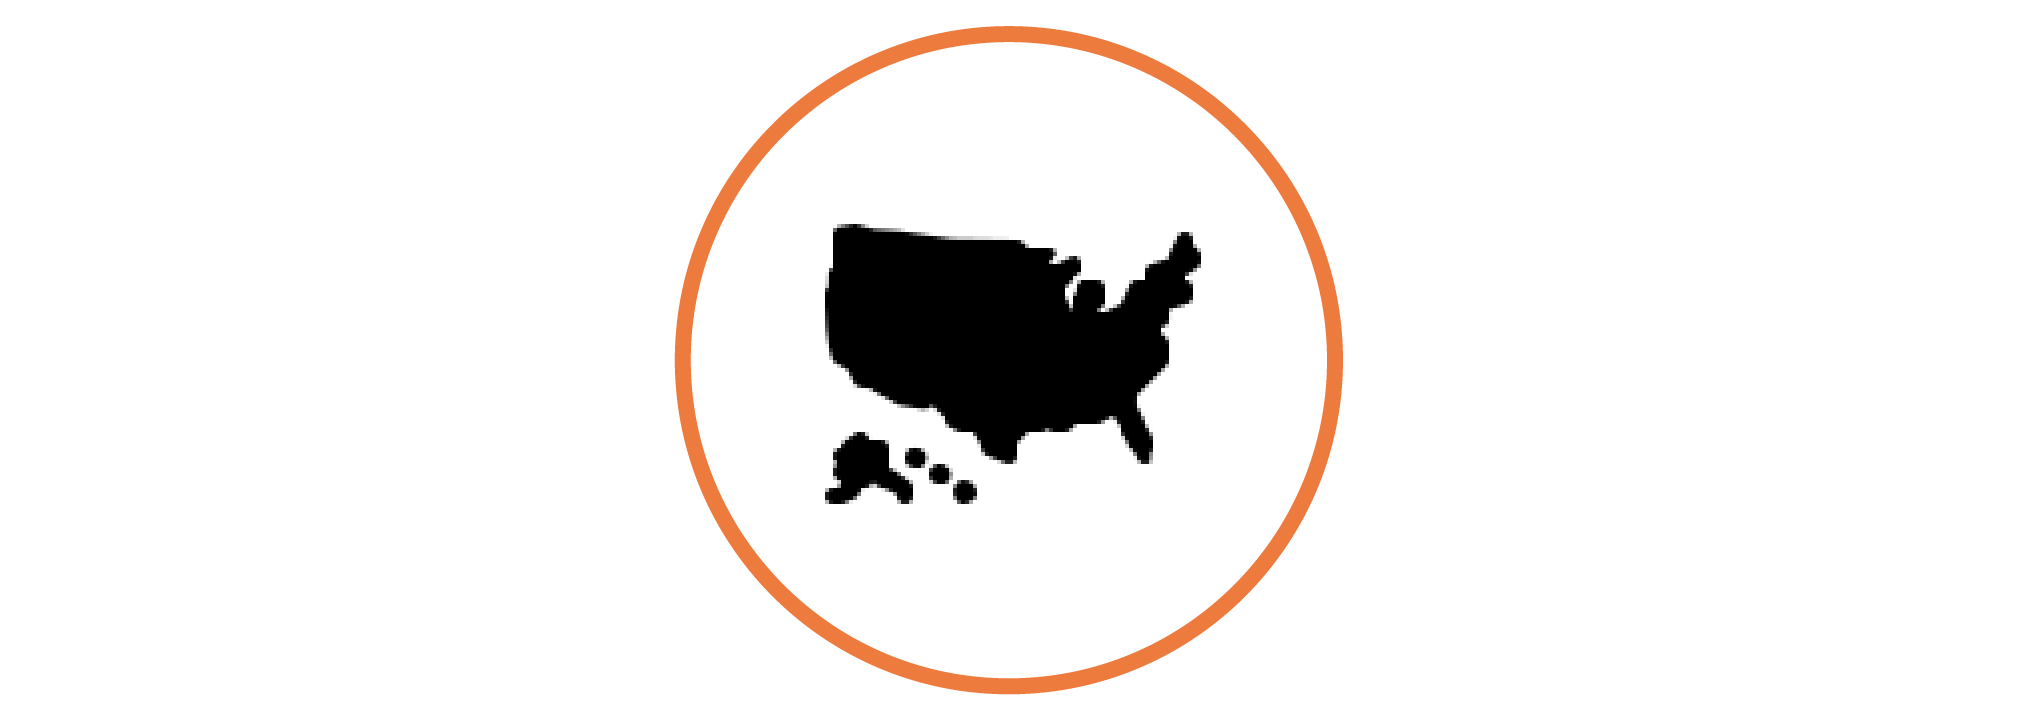 icon-location-usa-shape-ios-black-filled.png